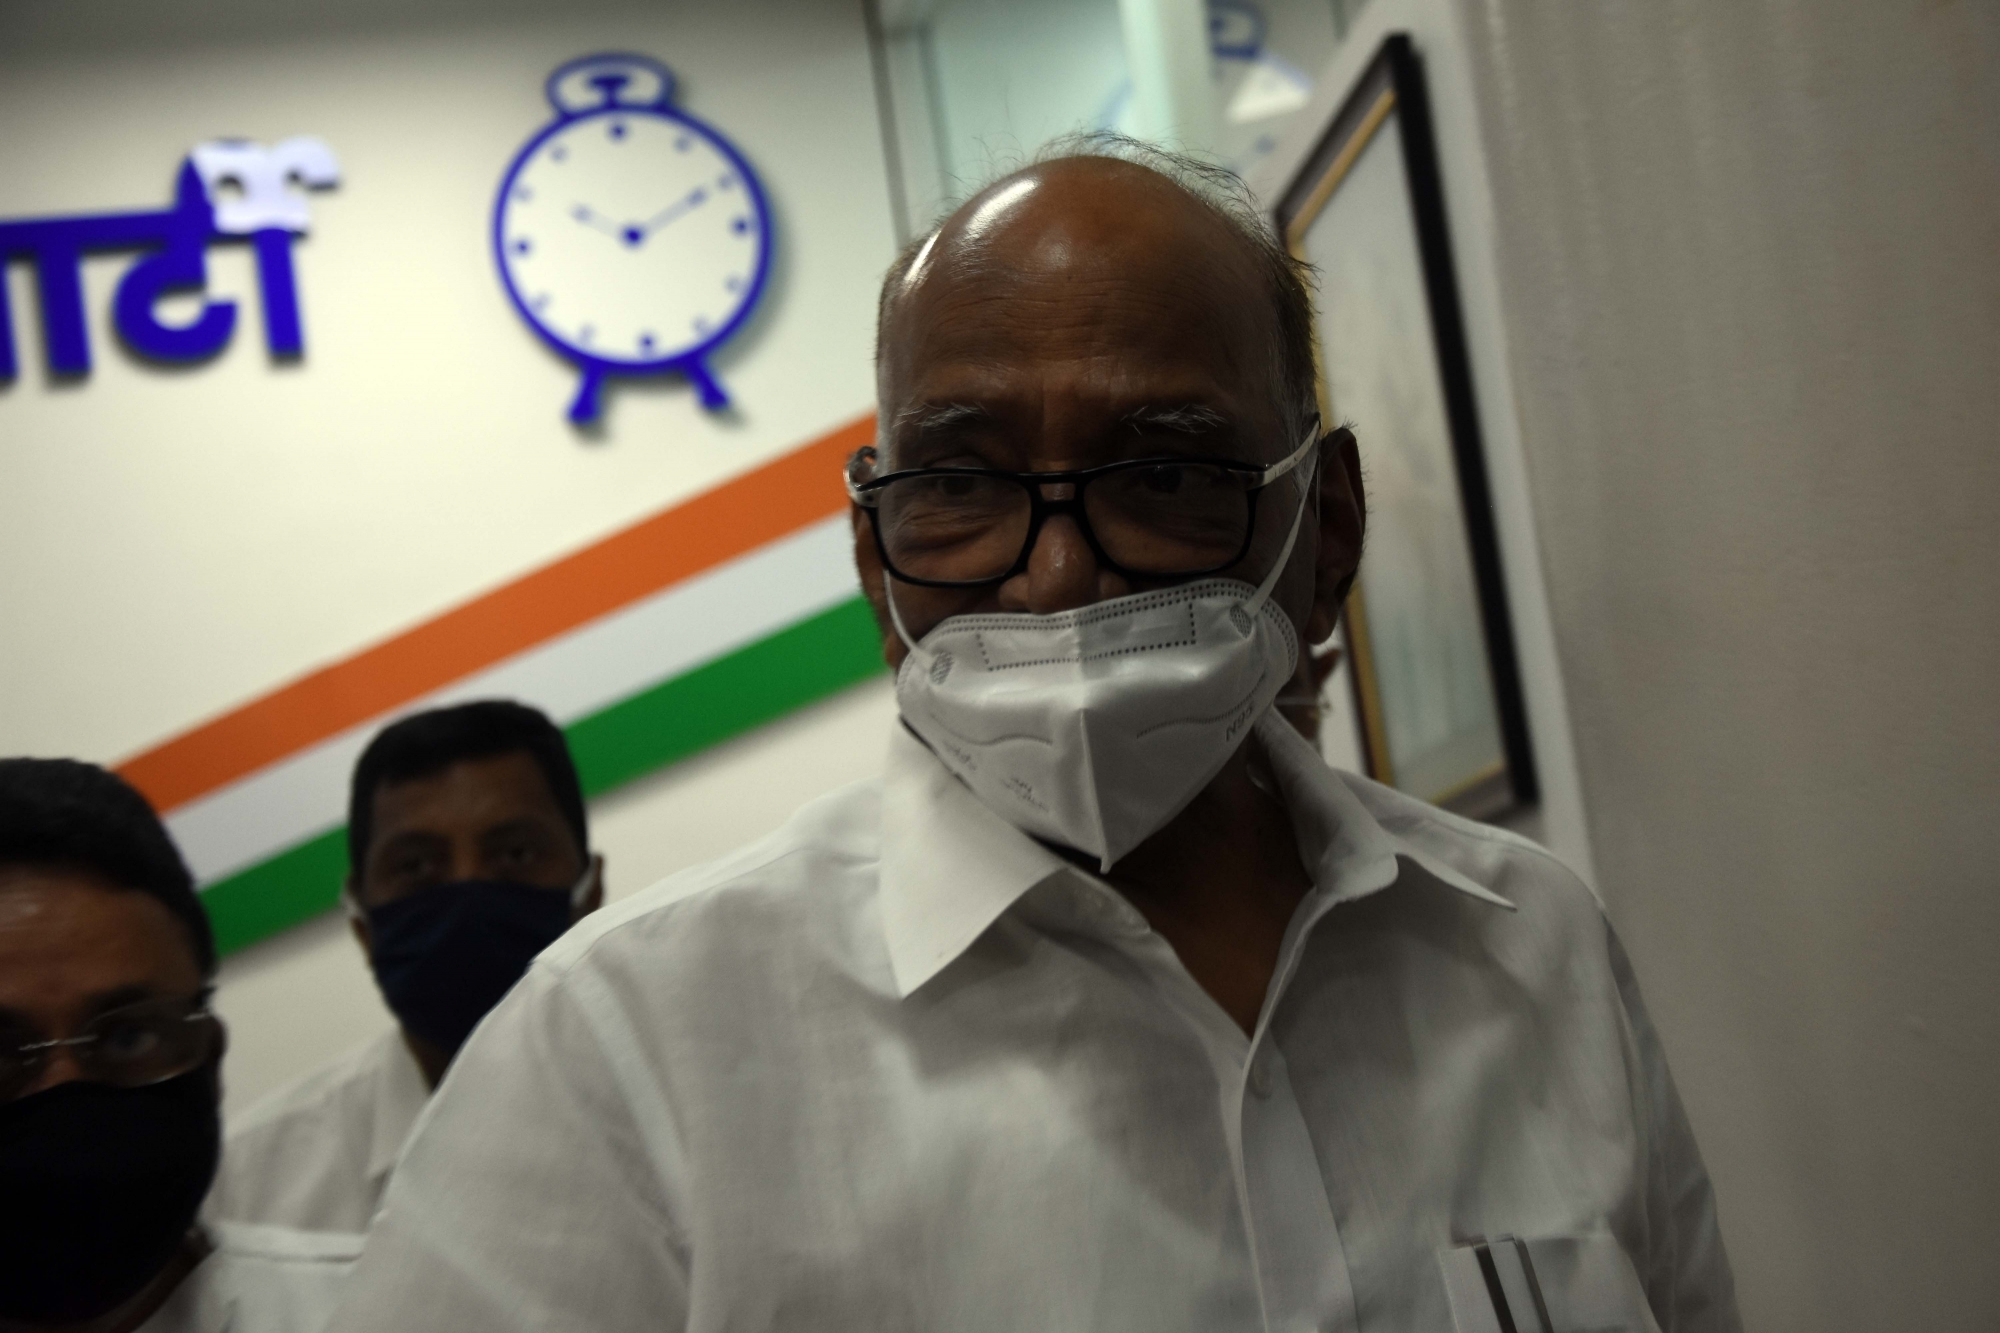 Central probe agencies misused by BJP to target political rivals: Sharad Pawar